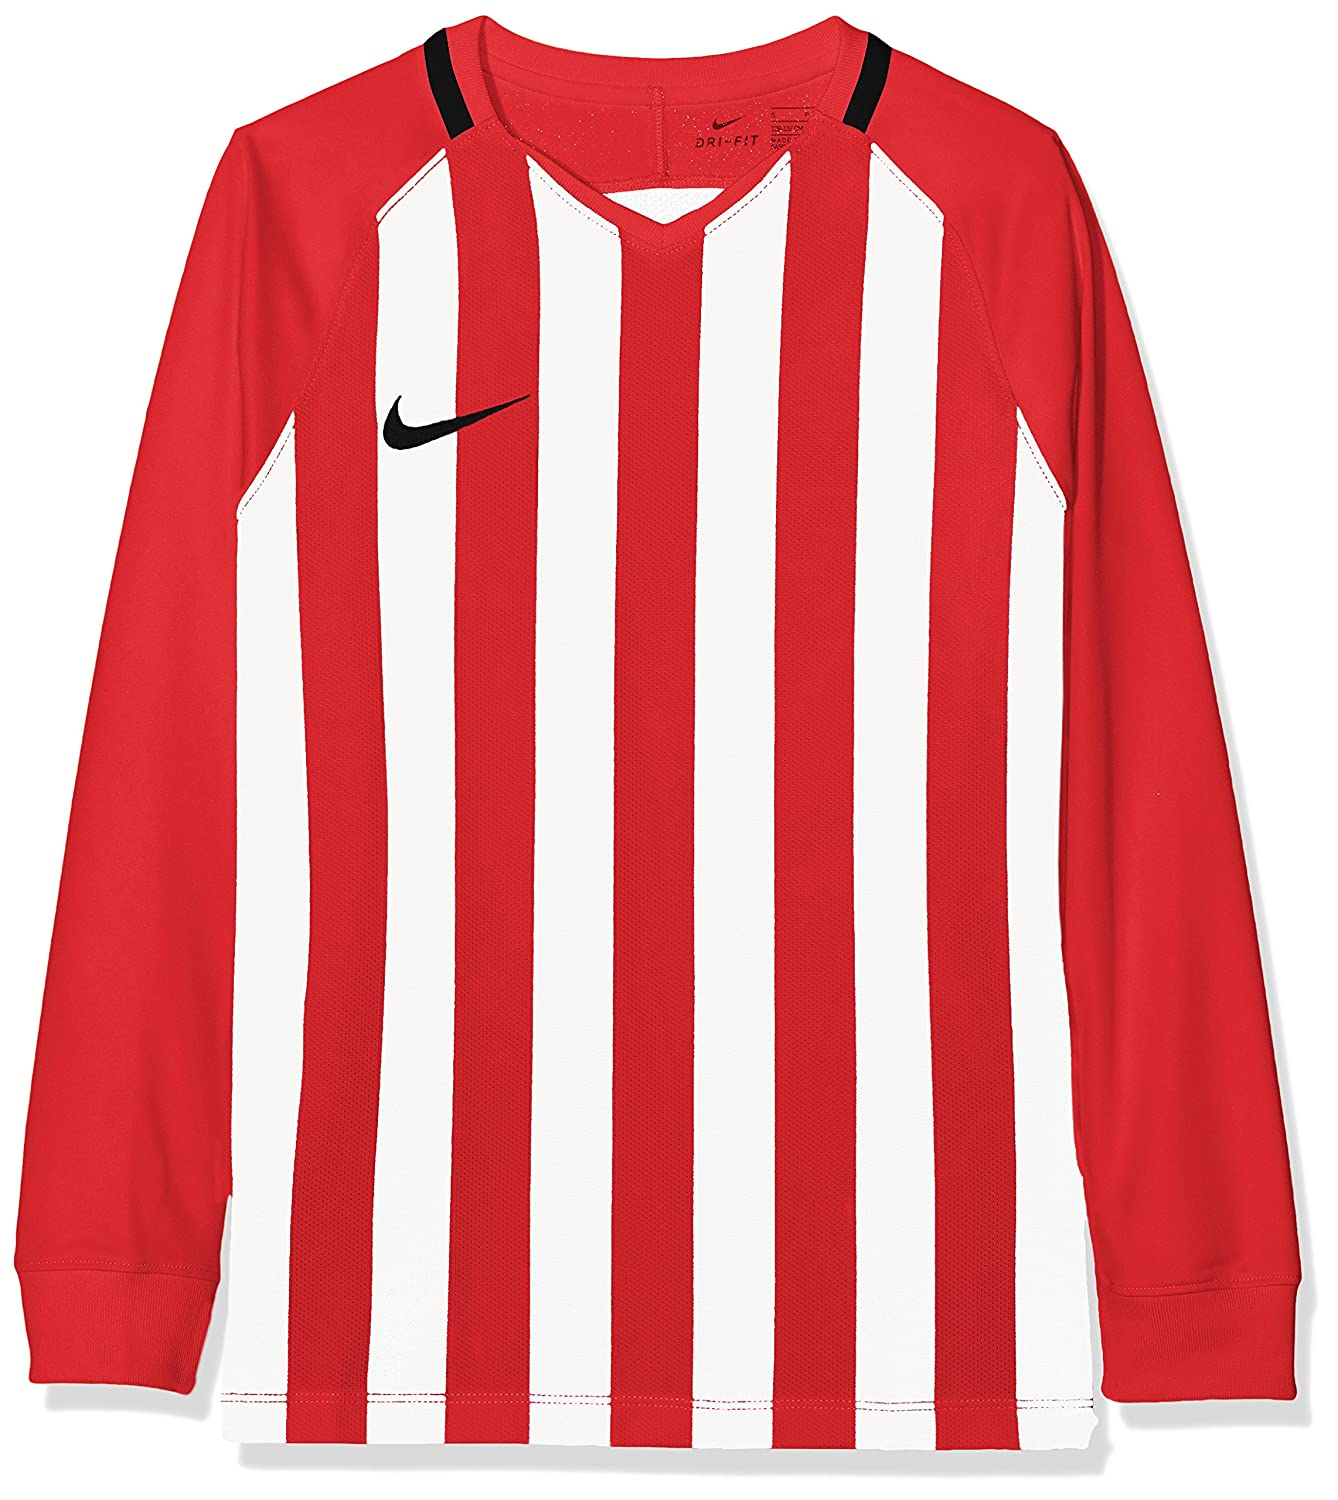 75af66454e01 Nike Unisex Youth Striped Division III Long Sleeve Top  Amazon.co.uk   Sports   Outdoors